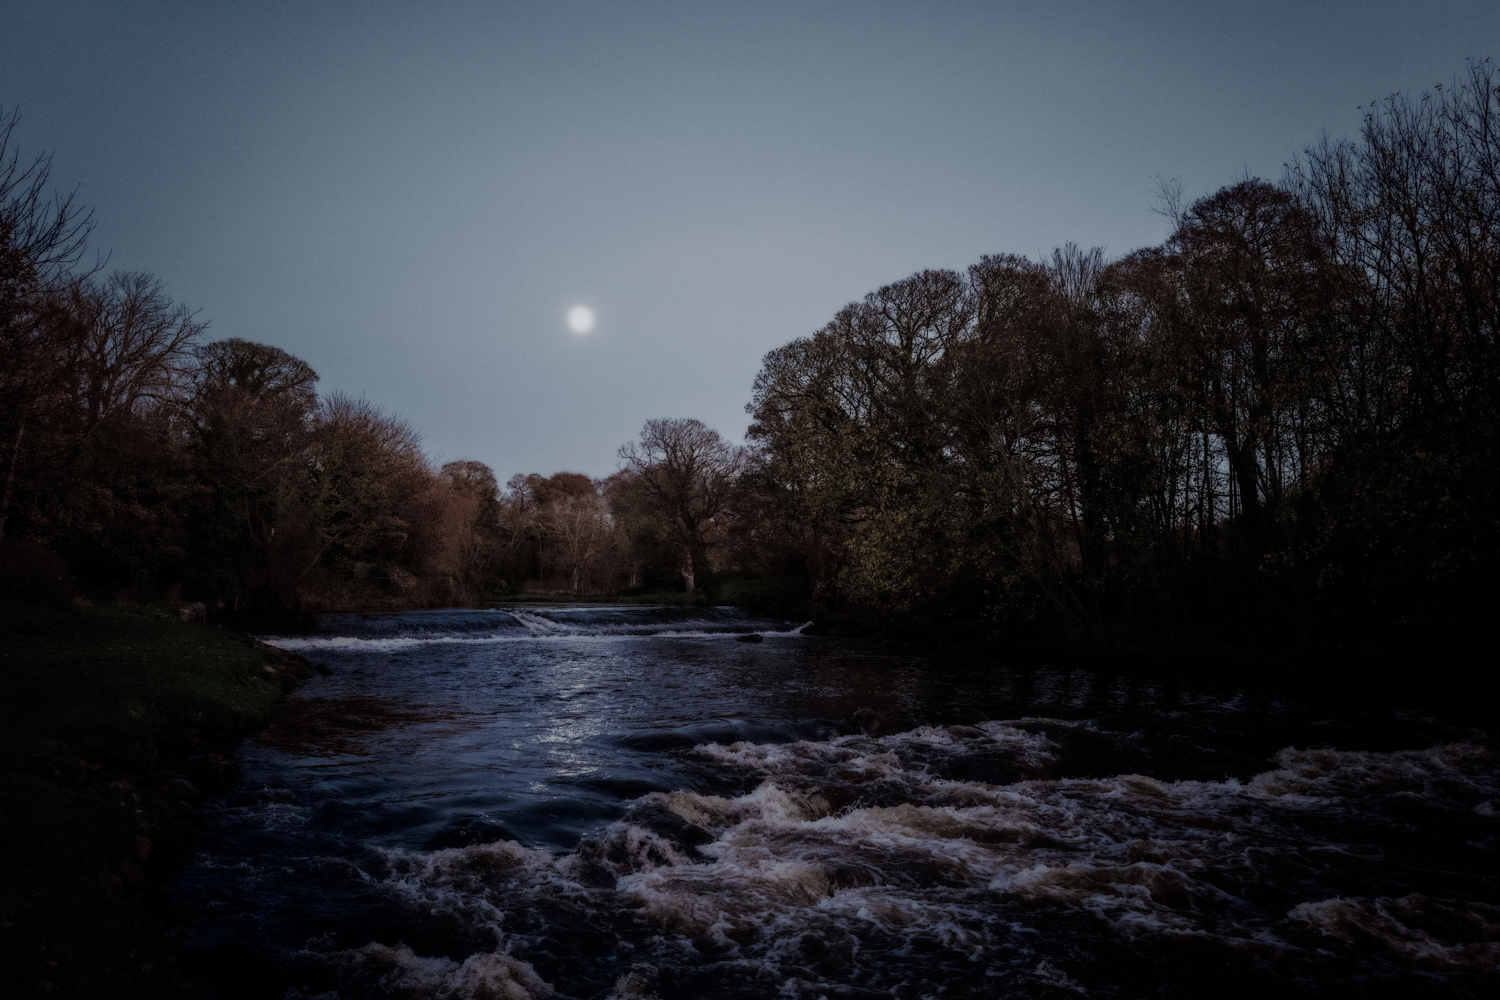 Moon River | Stephen Cosh Photography